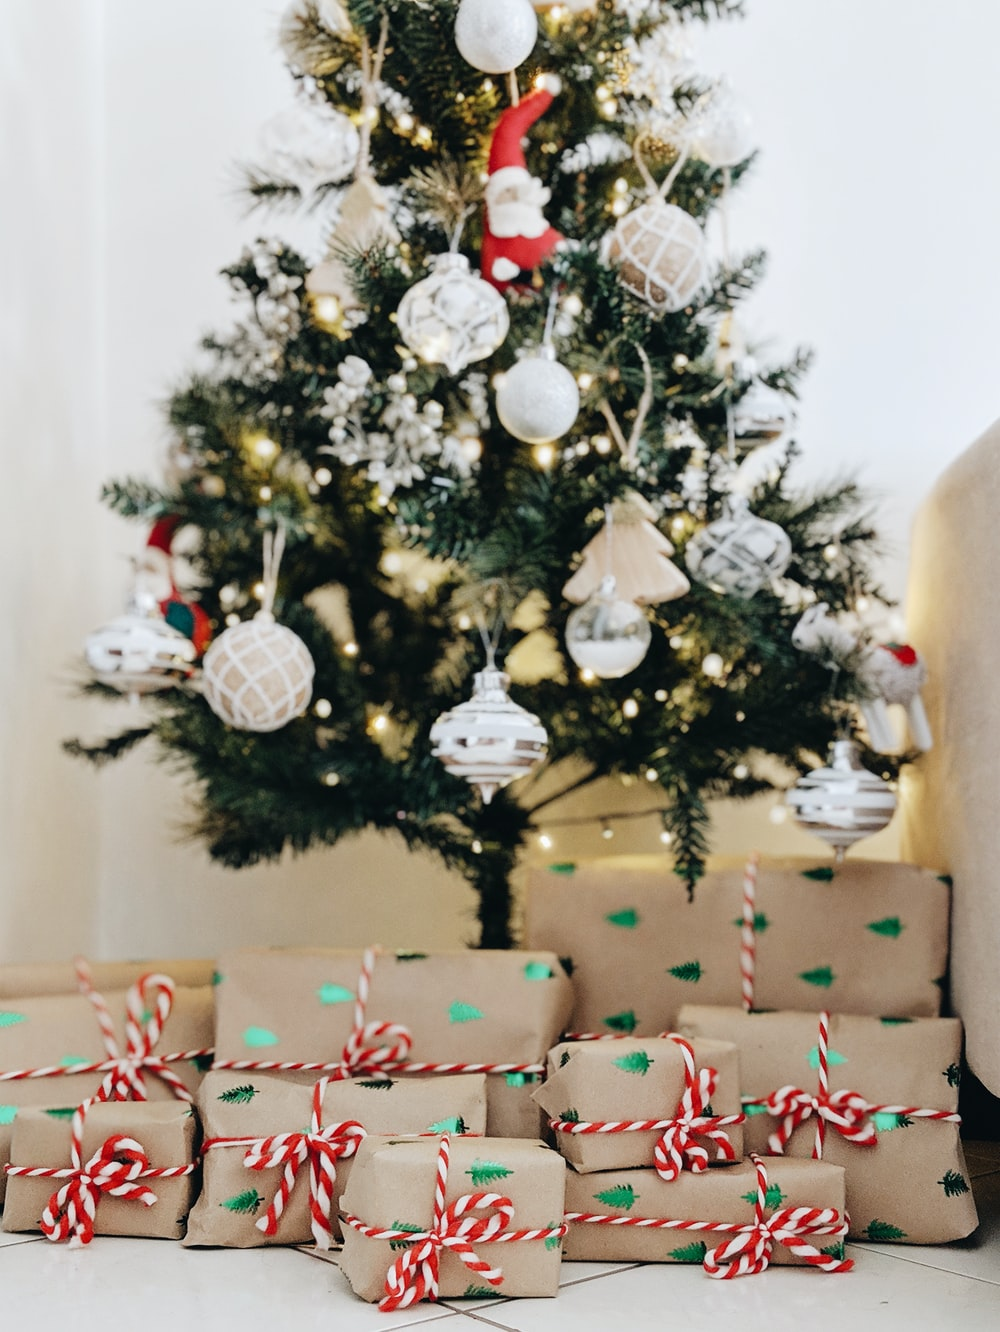 bundle of gifts near Christmas tree